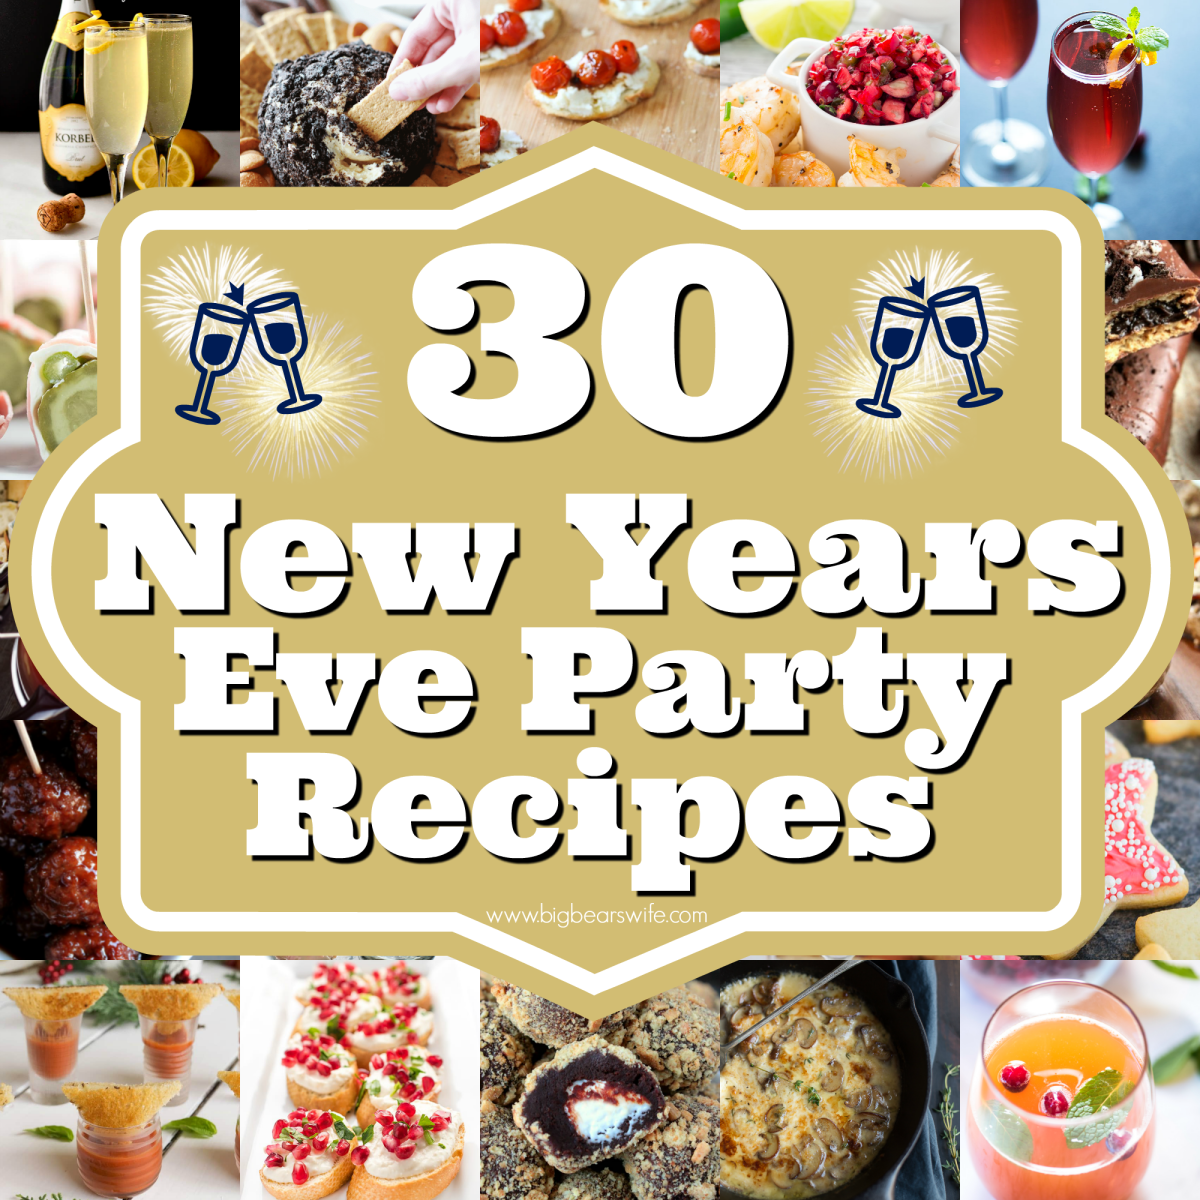 Dinner Ideas For New Years Eve Party Part - 26: 30 New Years Eve Party Recipes - Savory Ideas, Sweets And Cocktails To Ring  In The New Year - Big Bearu0027s Wife